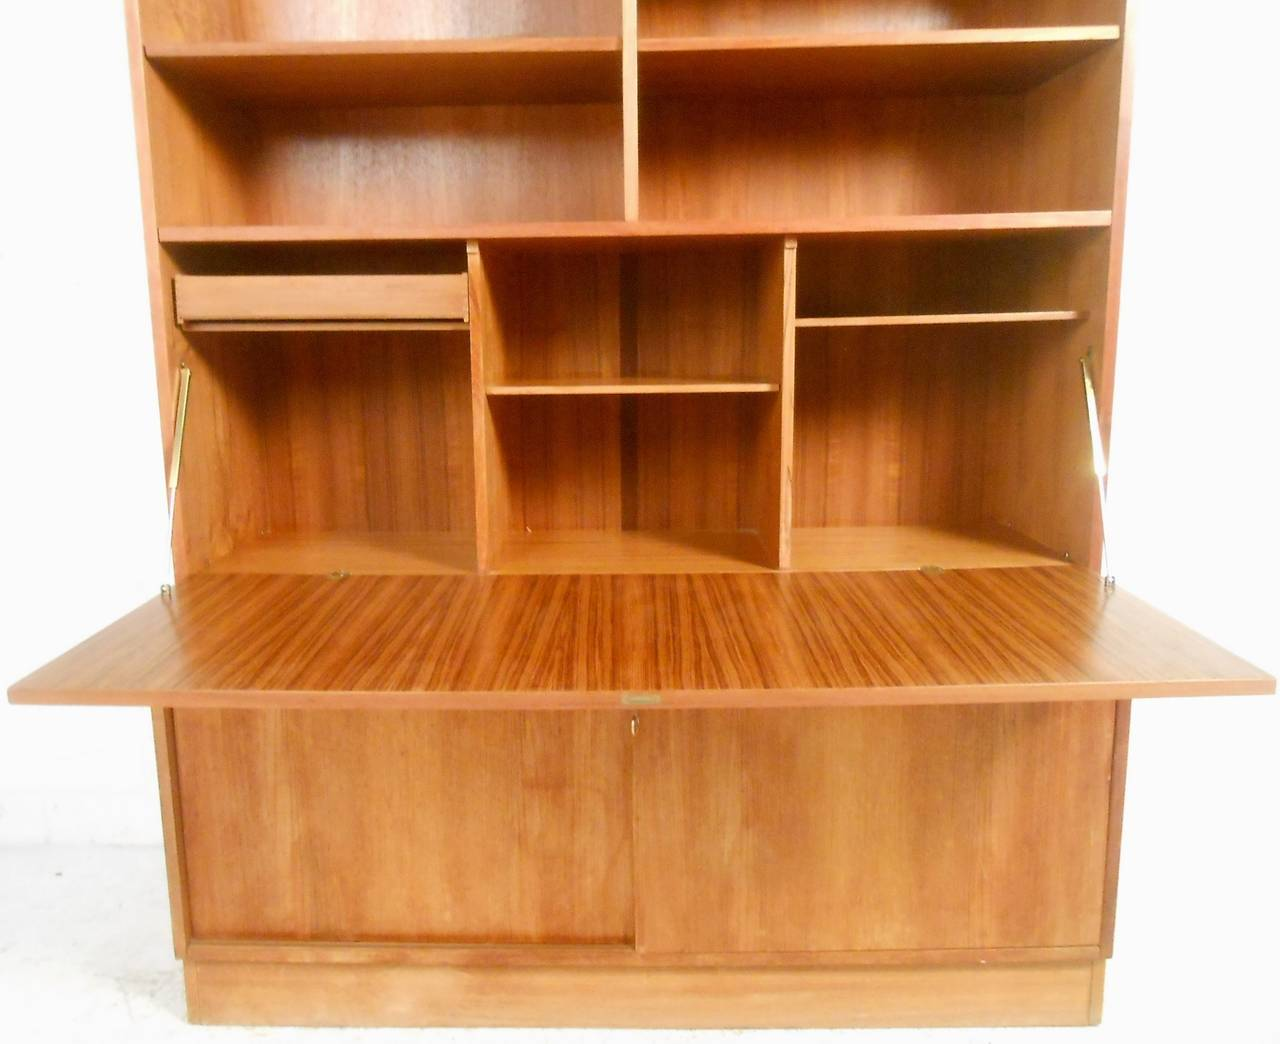 Gorgeous Mid Century Modern Danish Teak Drop Front Secretary Bookcase In Good Condition For